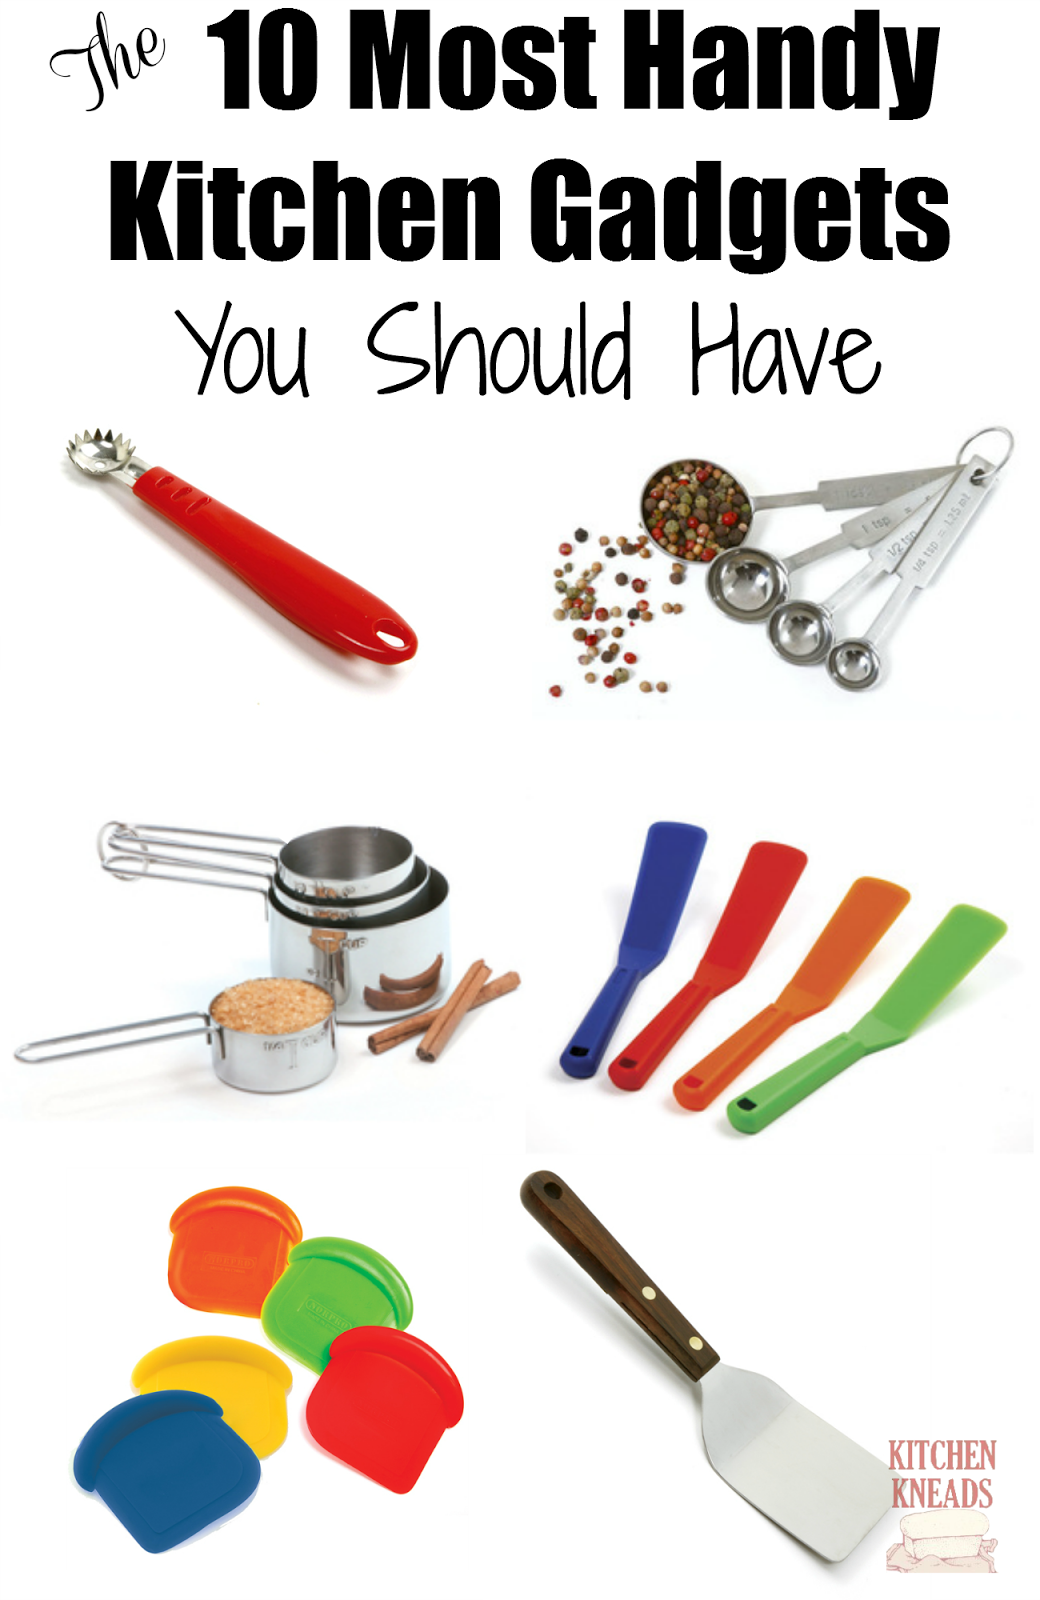 Kitchen Kneads The 10 Most Handy Kitchen Gadgets You Should Have